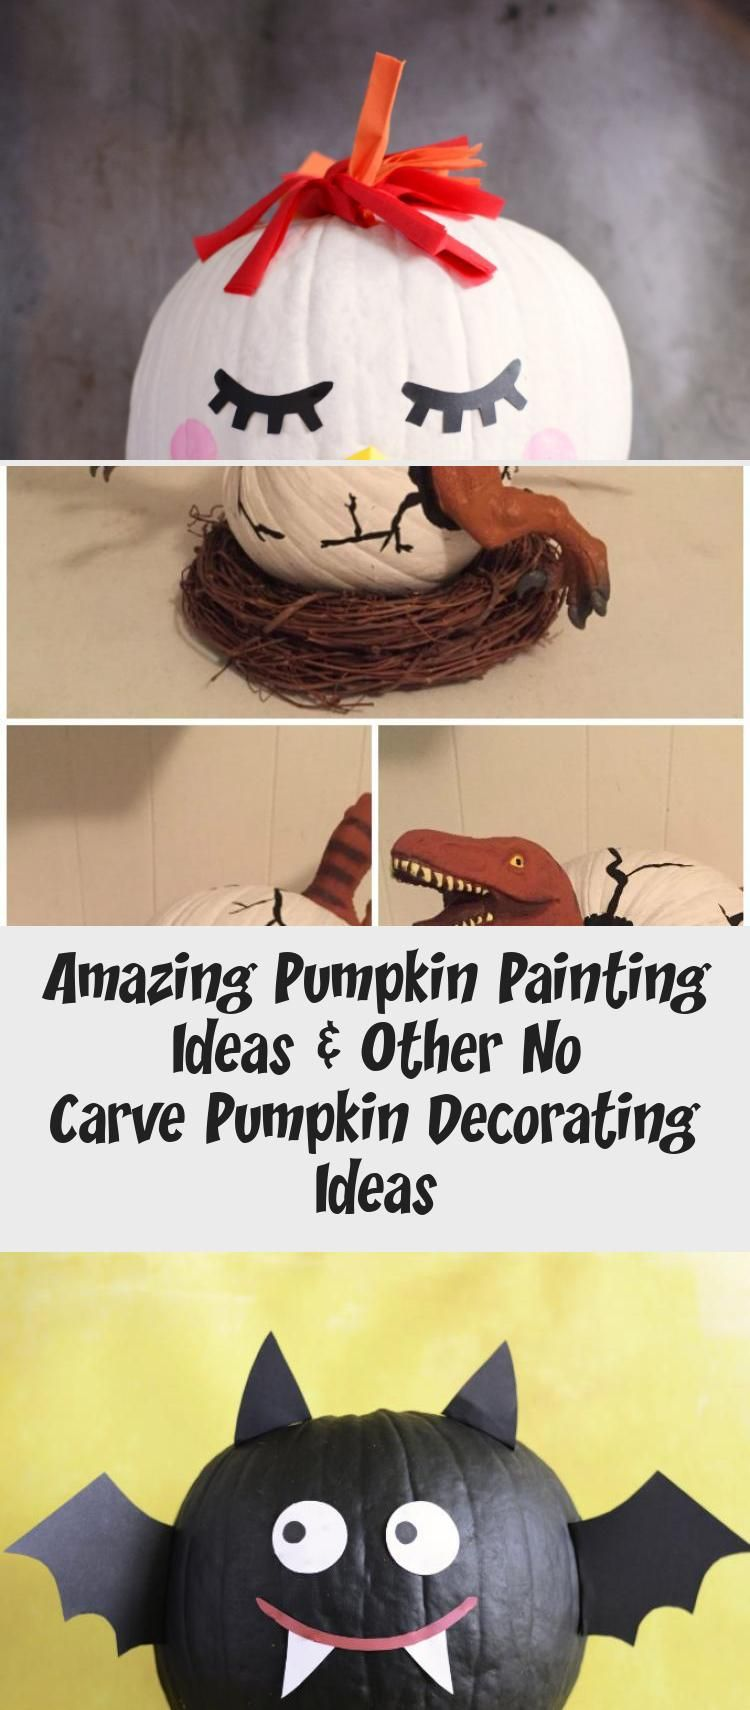 Amazing Pumpkin Painting Ideas & Other No Carve Pumpkin Decorating Ideas #paintingideasCreative #Potterypaintingideas #Smallpaintingideas #Fallpaintingideas #paintingideasBeginner #pumpkinpaintingideascreative